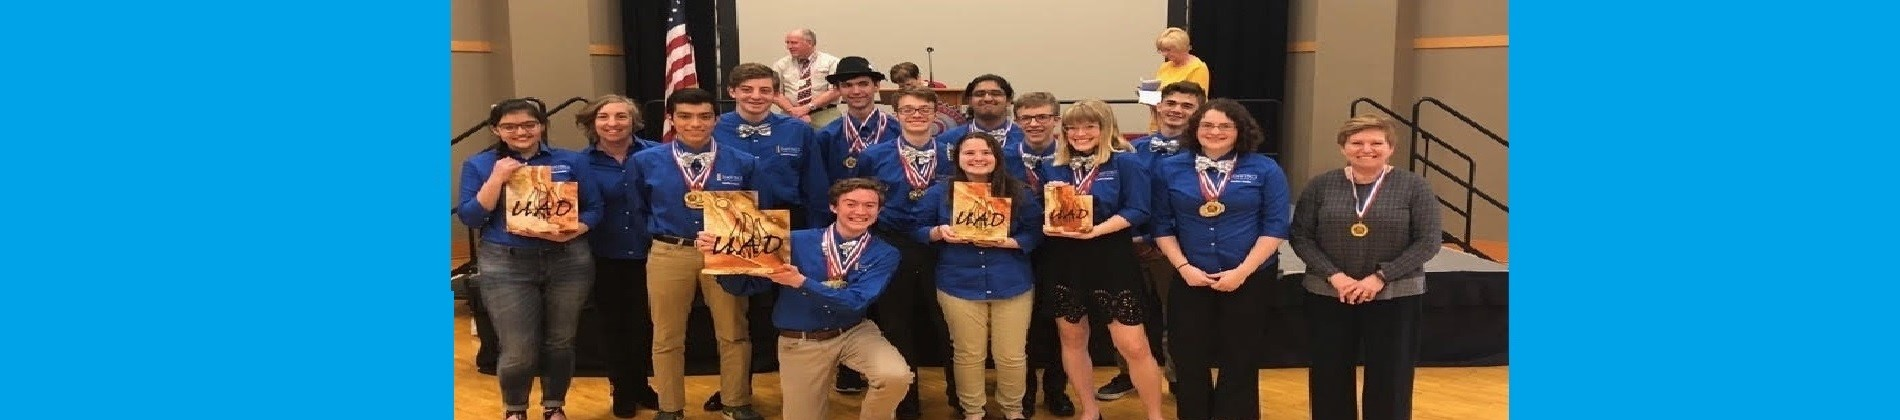 Academic Decathlon 2018 State Champs!!!!